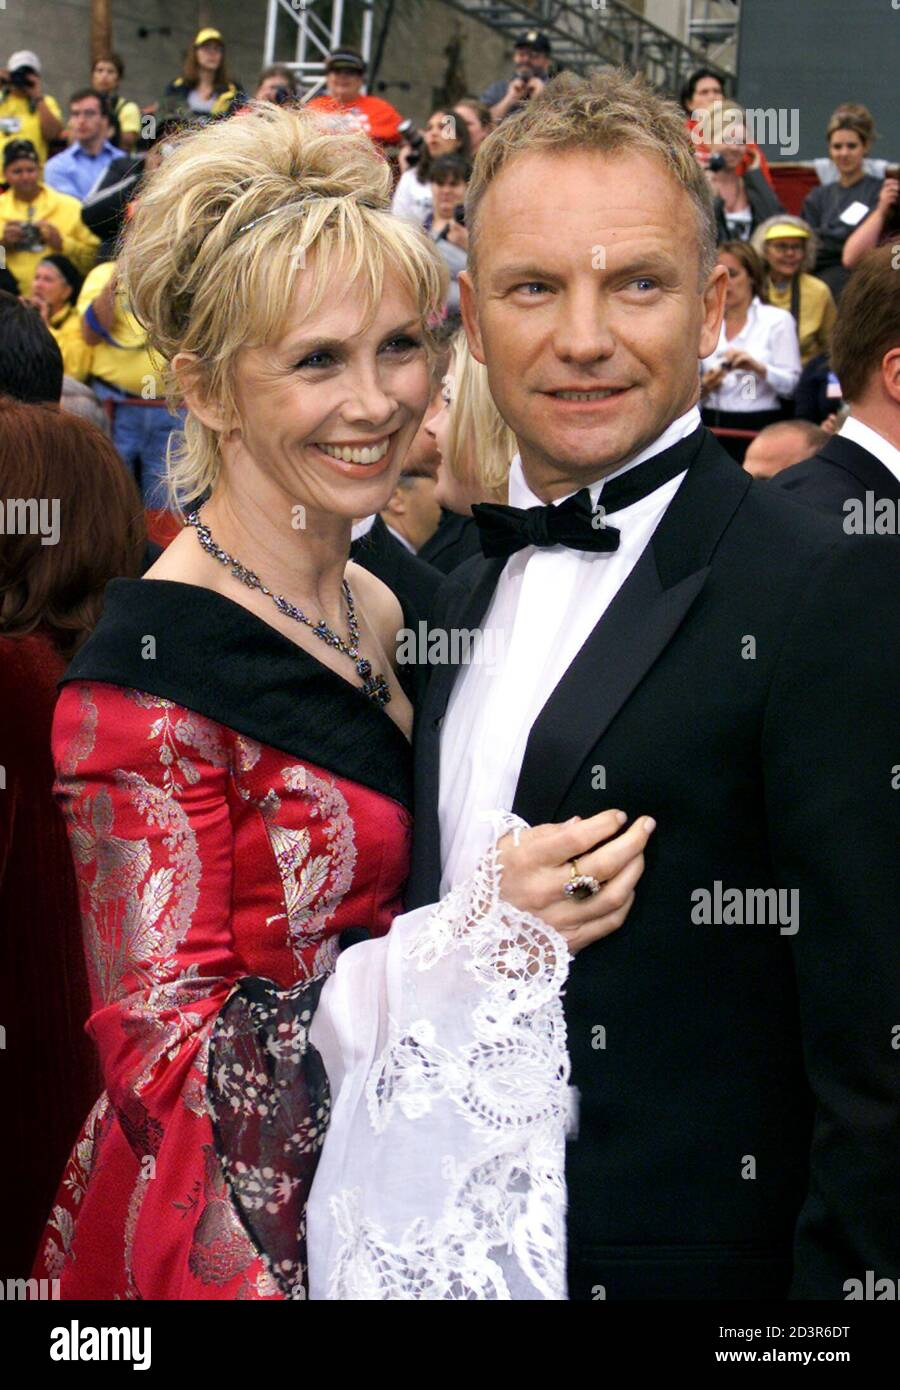 """Musician Sting, nominated for best song for """"Until"""" from the film """"Kate & Leopold,"""" arrives with his wife Trudie Styler at the 74th annual Academy Awards March 24, 2002 in Hollywood. Stock Photo"""